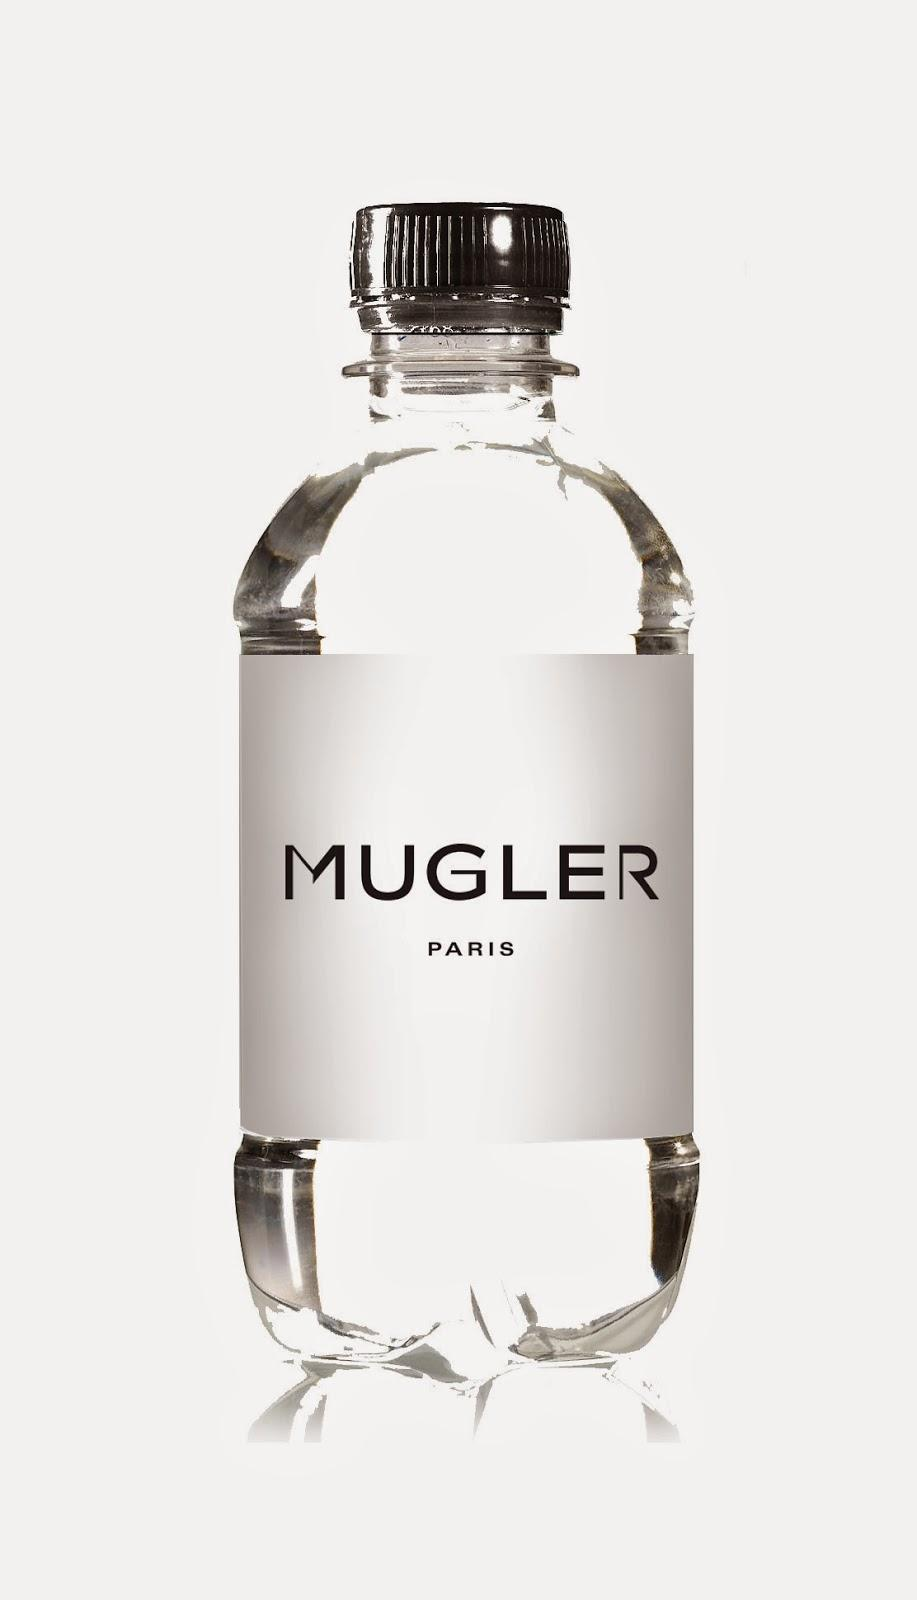 Mugler water by Drinkyz